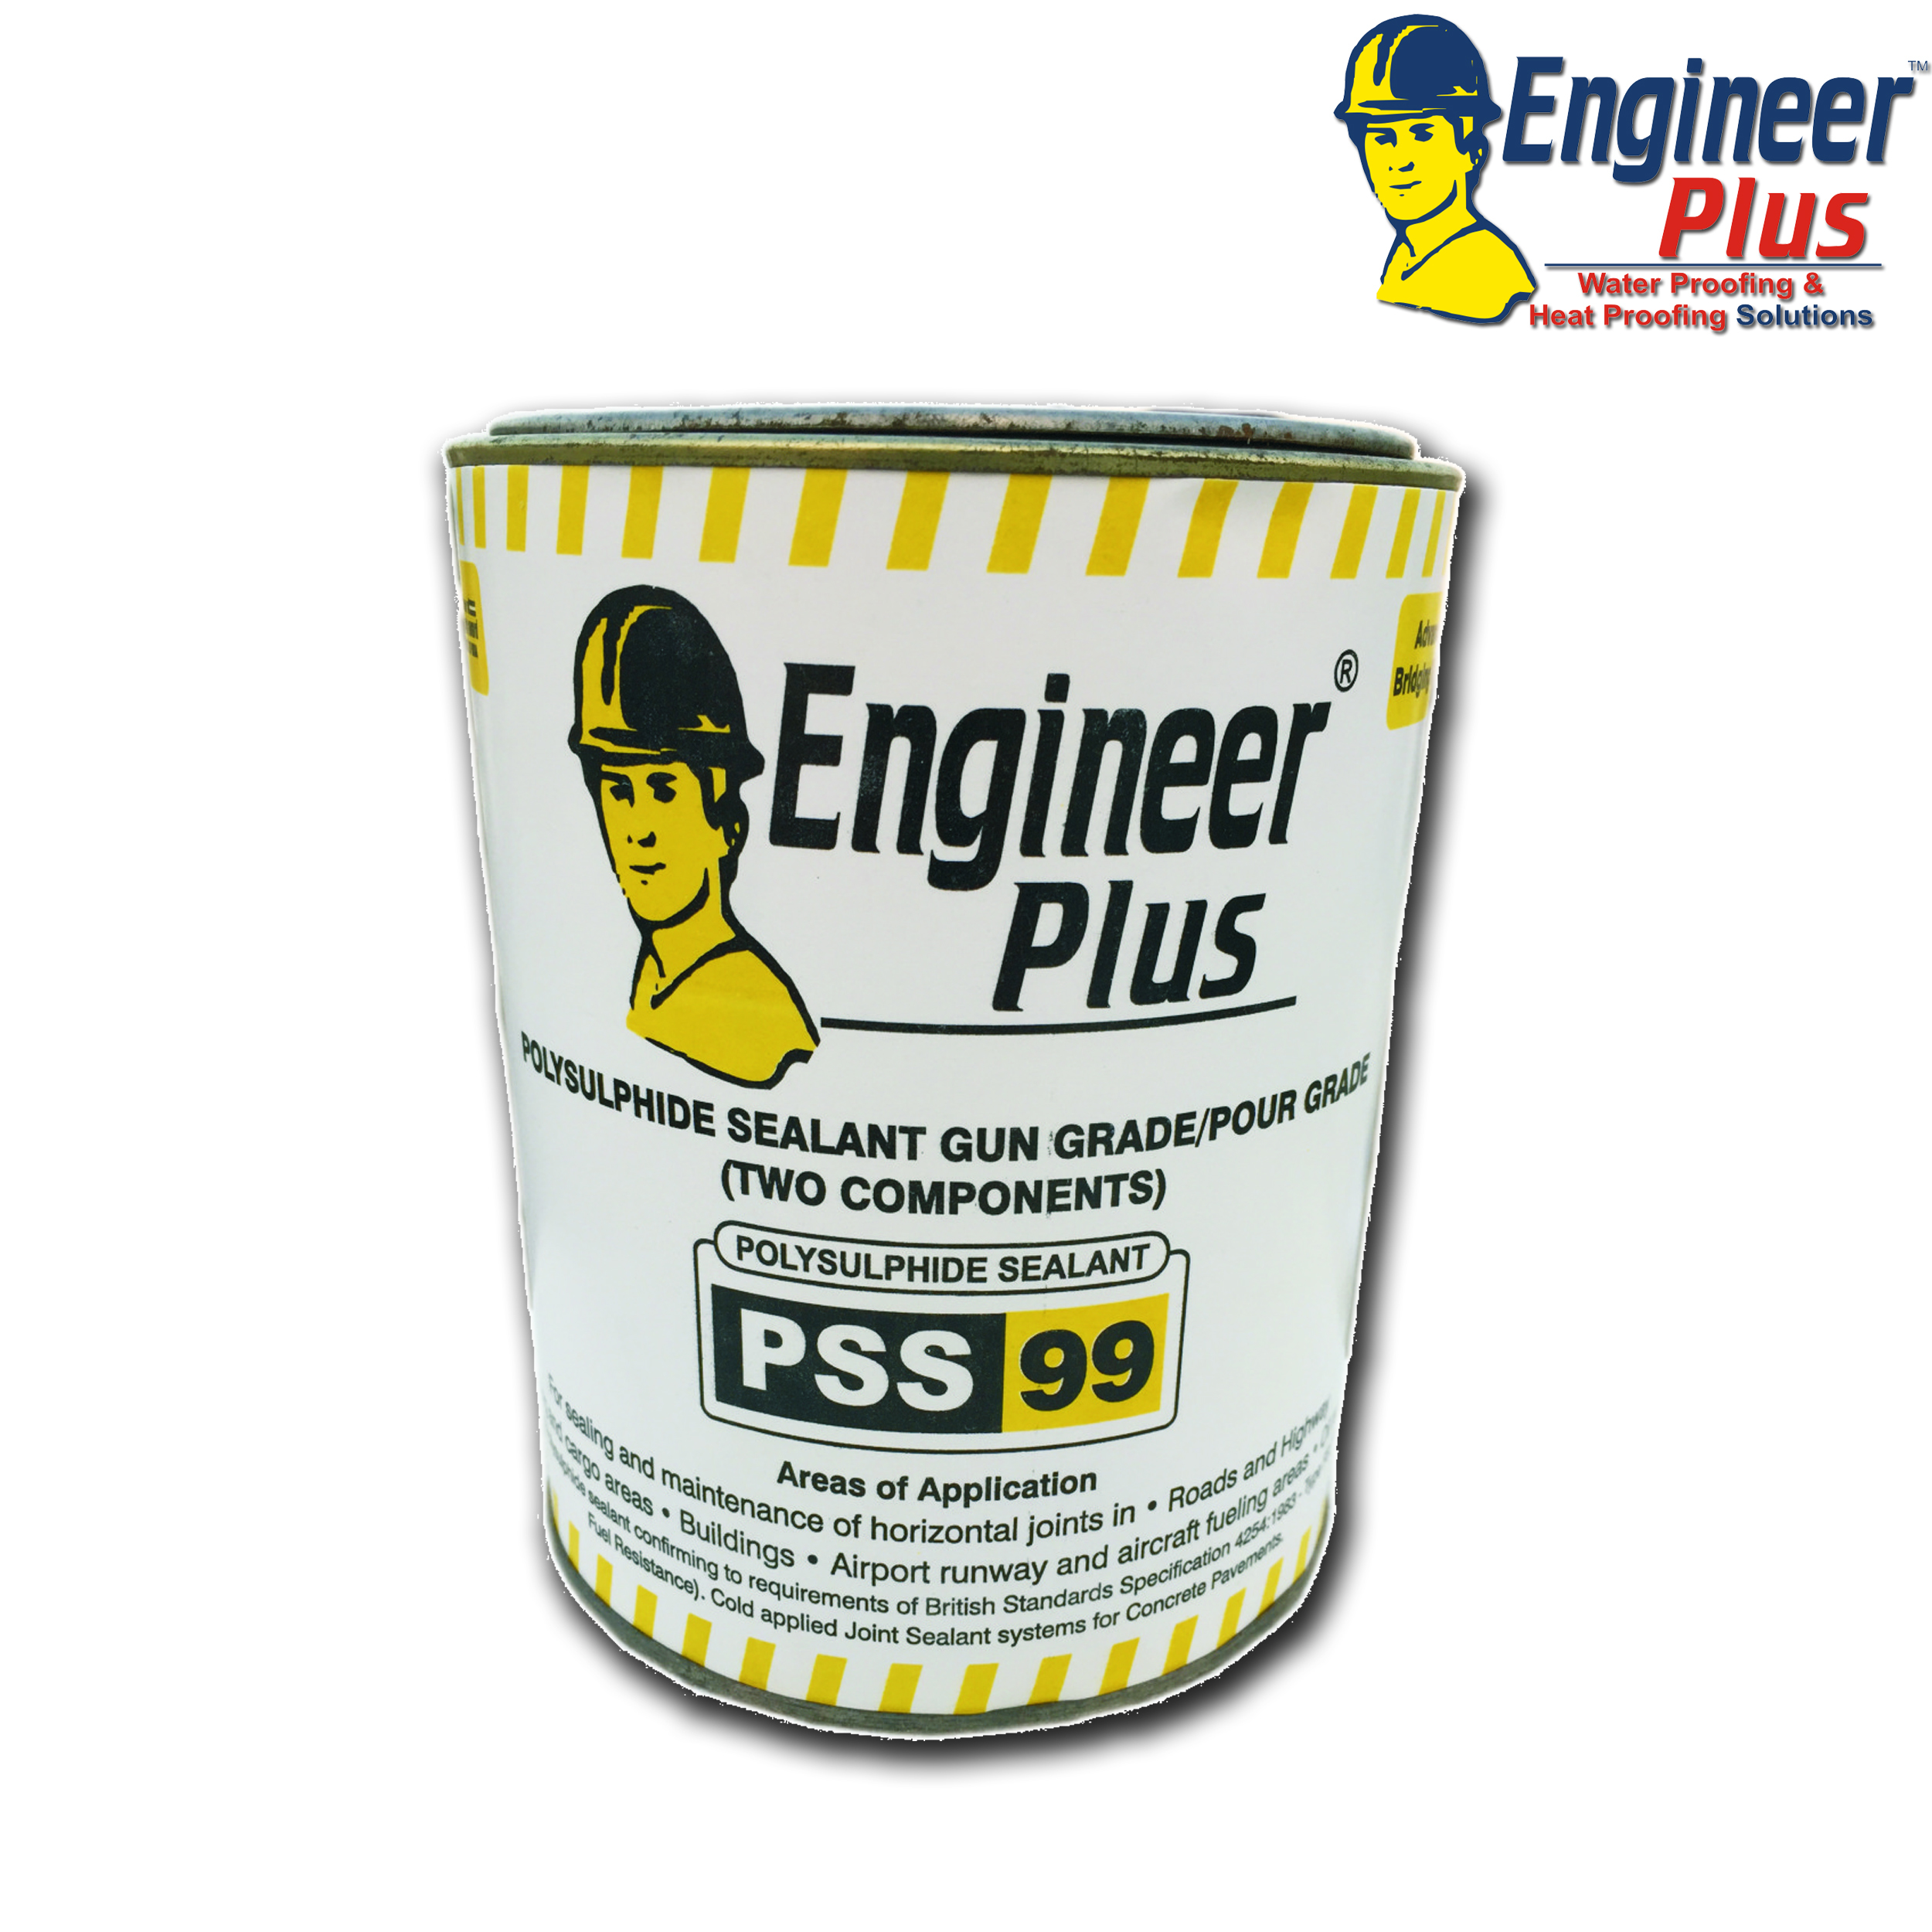 PSS 99 Waterproofing Chemical